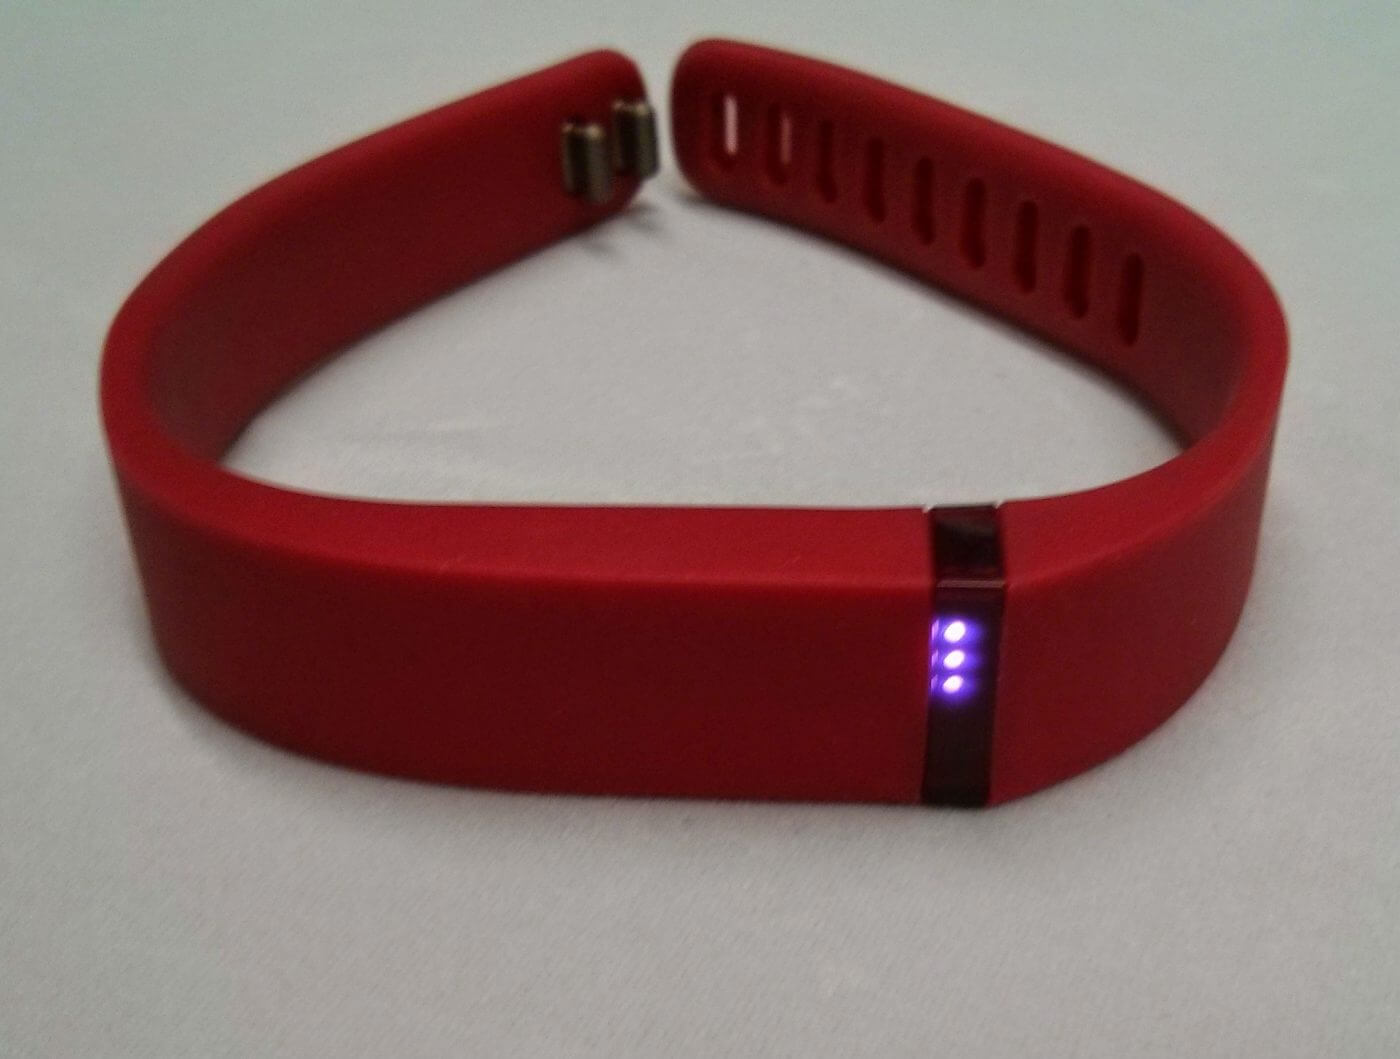 Fitbit flex review geek news central the flex has an internal rechargeable battery which lasts about 5 days between charges to charge the flex up the tracker unit is taken out of the sciox Image collections